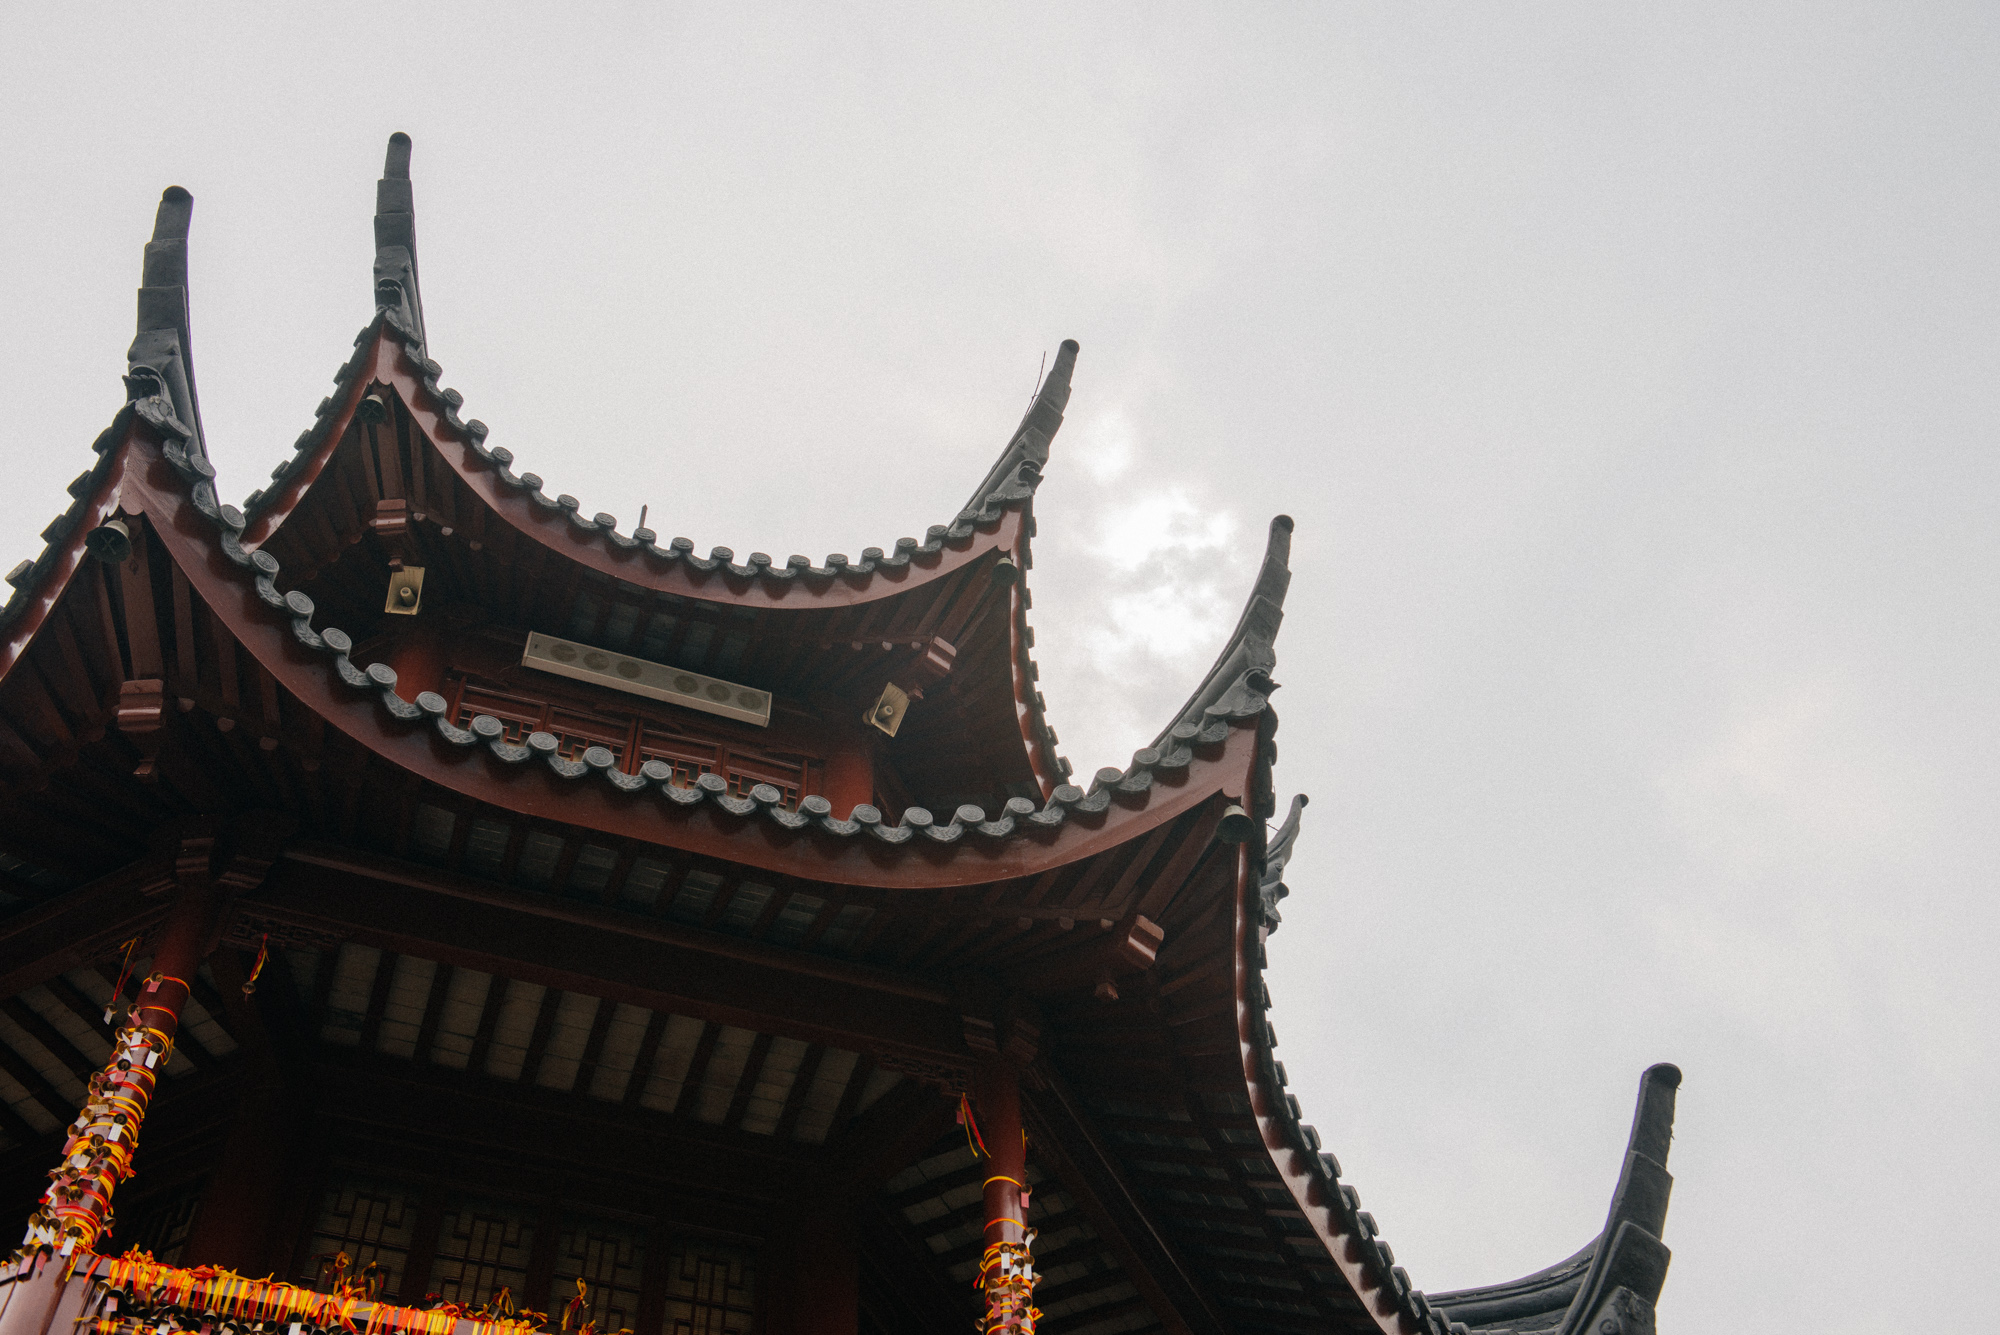 The roofs of the buildings are unique to this region and distinct from those in Beijing and Xi'an. It's amazing you can tell apart each region by the architecture of the roofs.